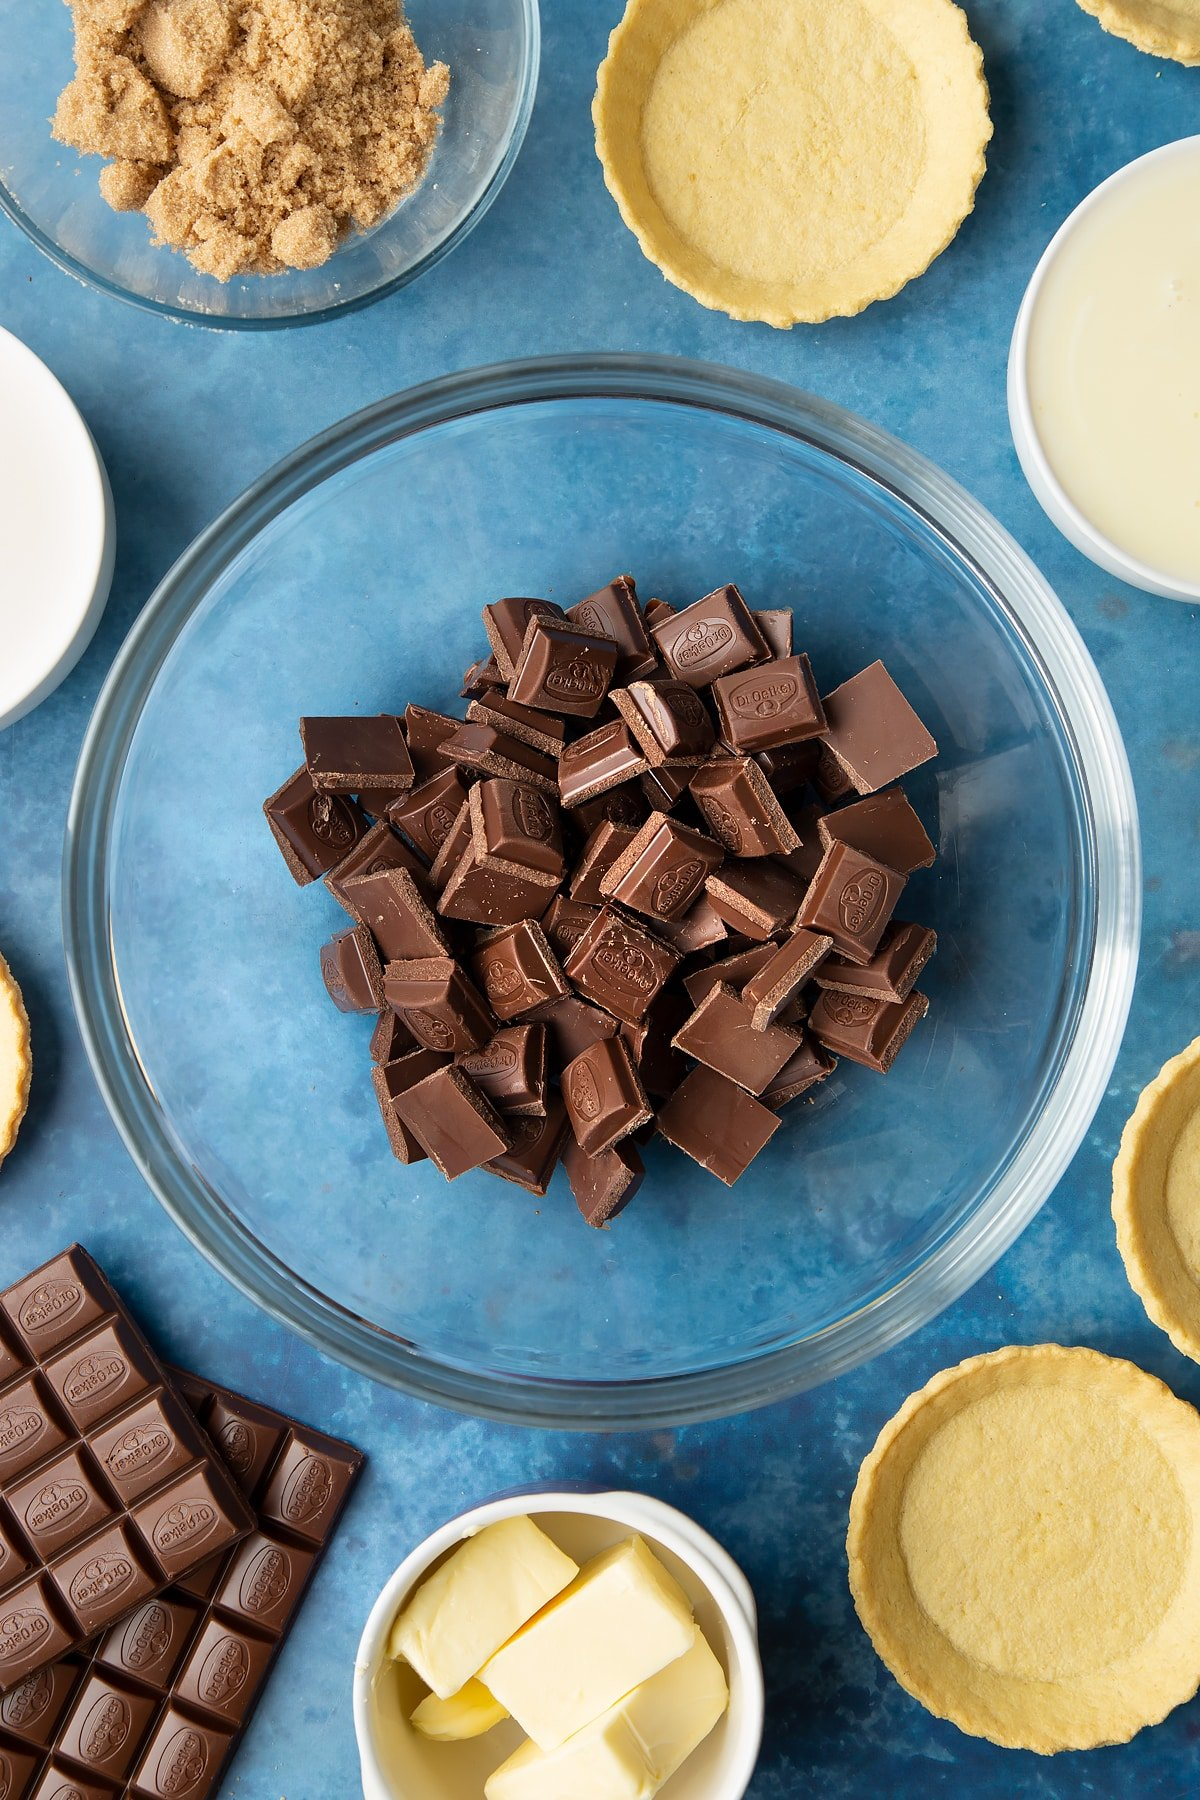 Broken up milk chocolate in a large mixing bowl. Ingredients to make mini chocolate tarts surround the bowl.